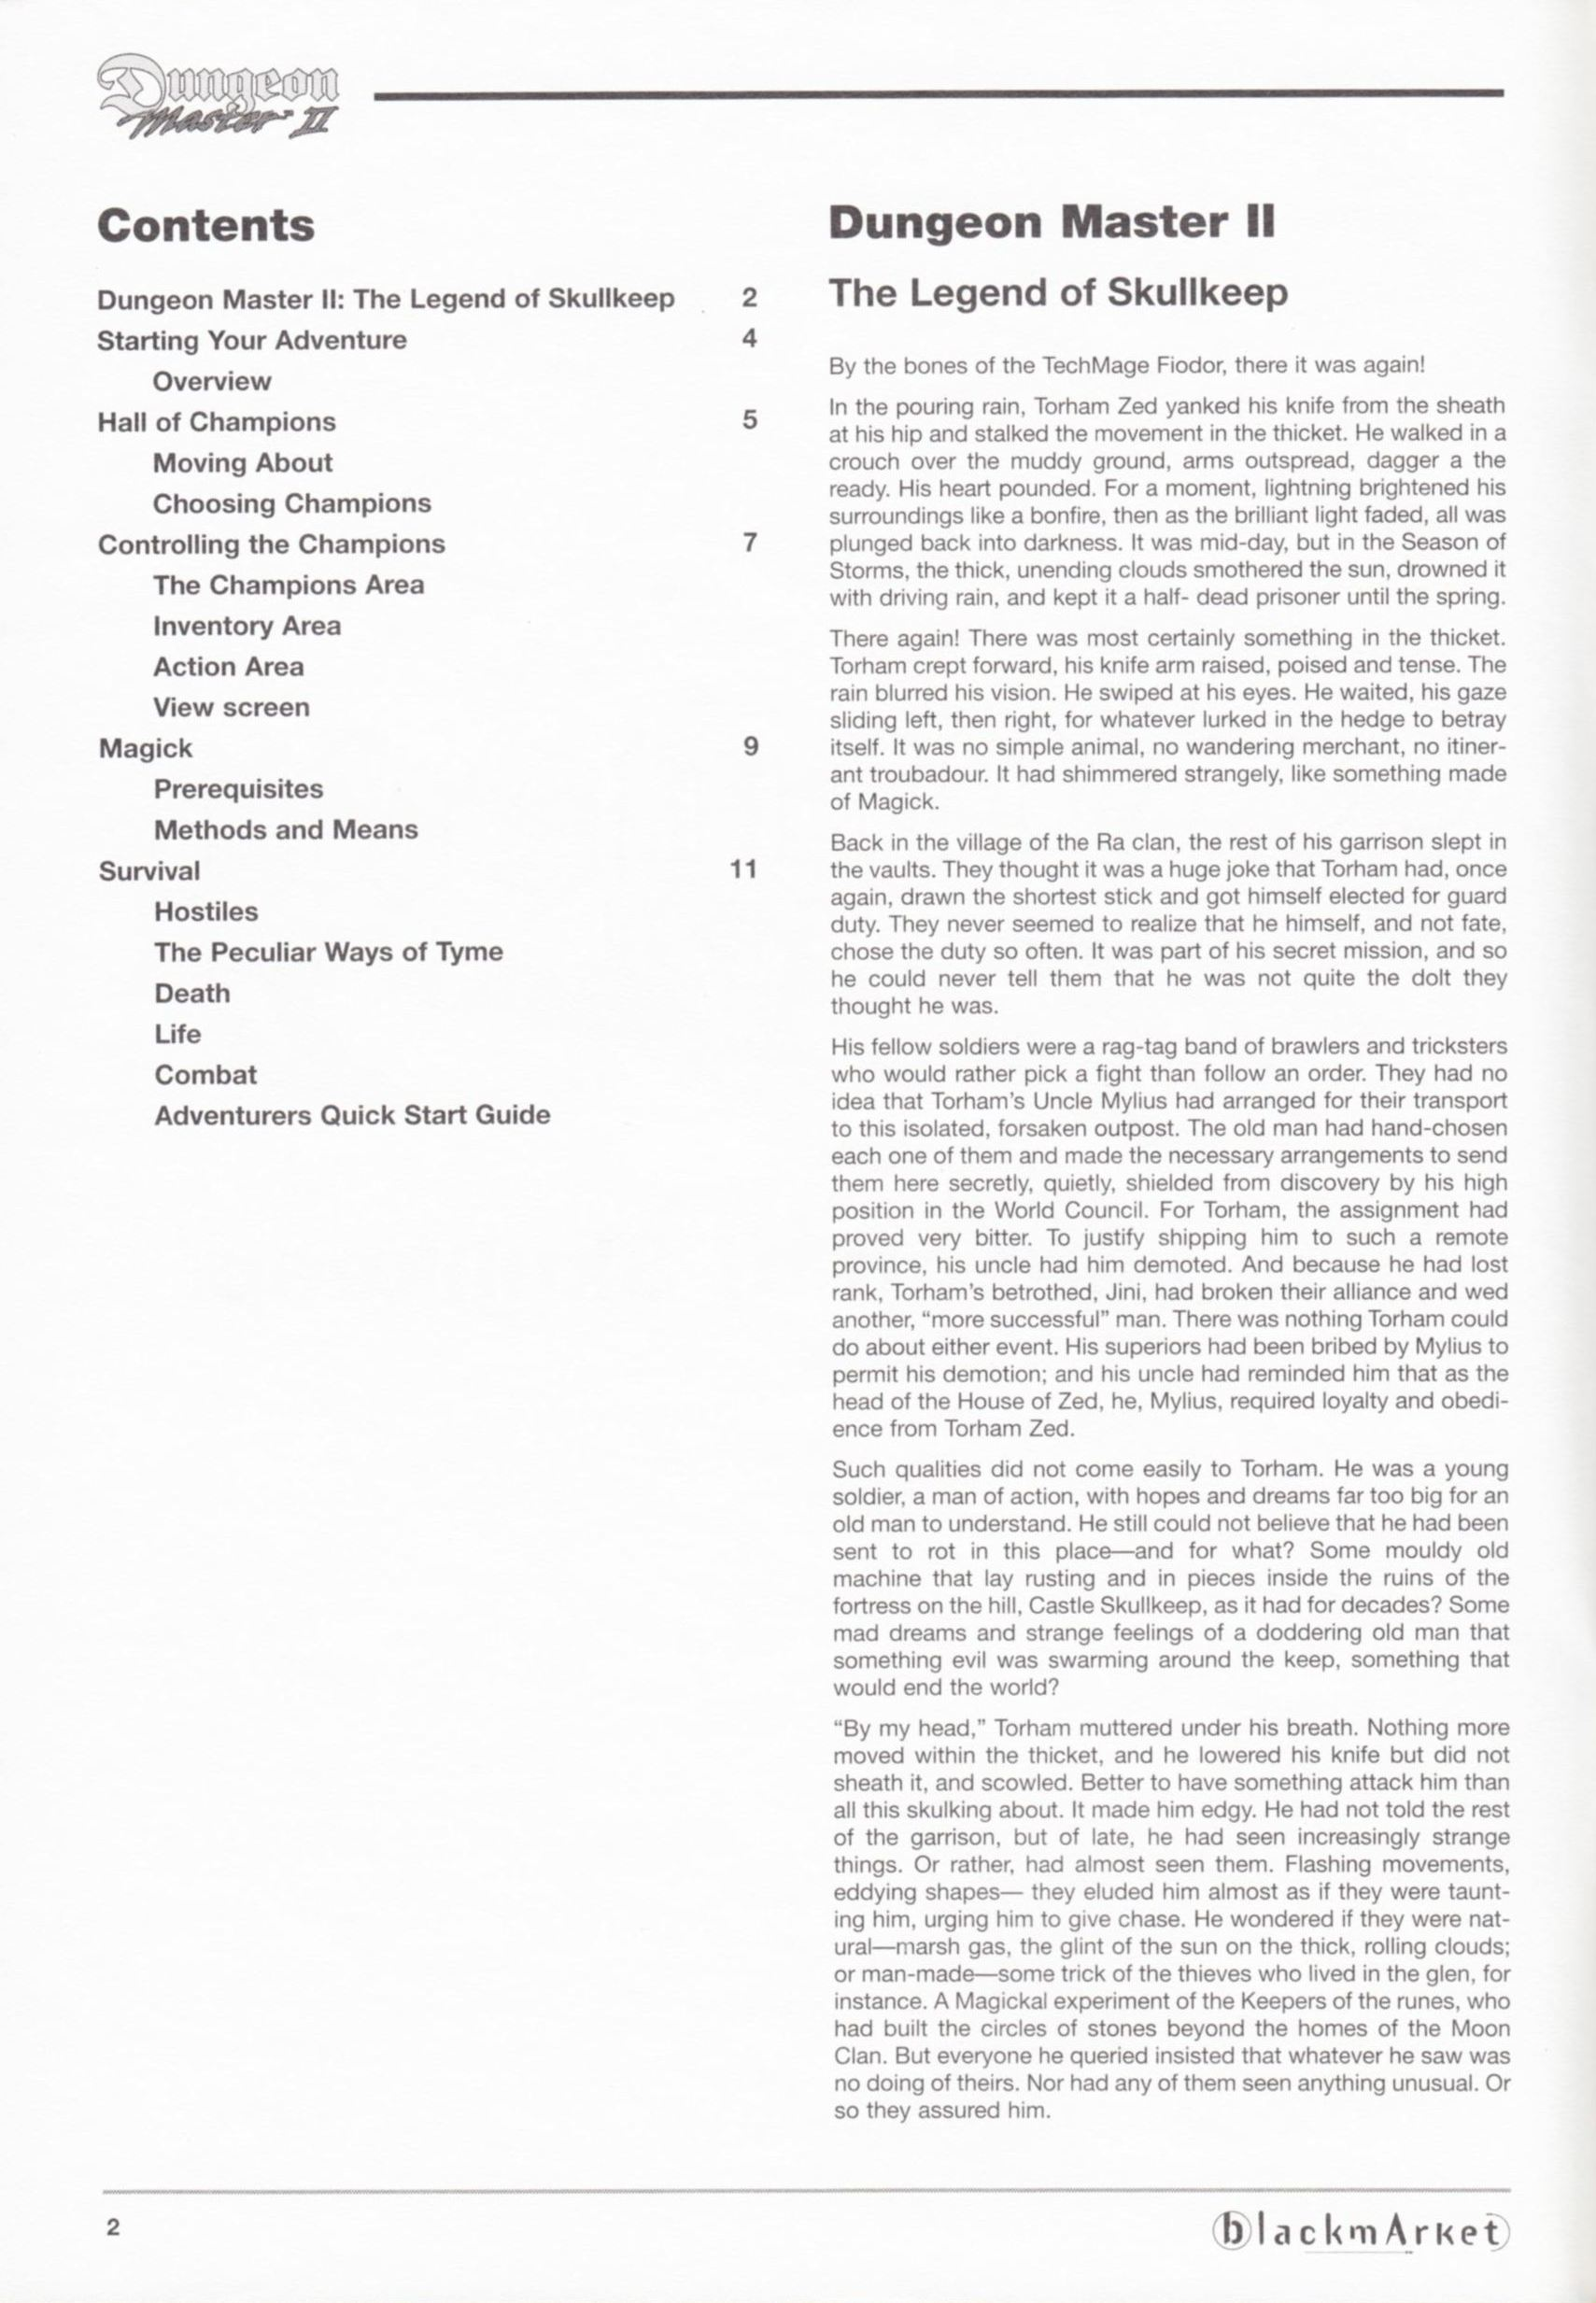 Game - Dungeon Master II - DE - PC - Blackmarket With Manual - Manual - Page 004 - Scan